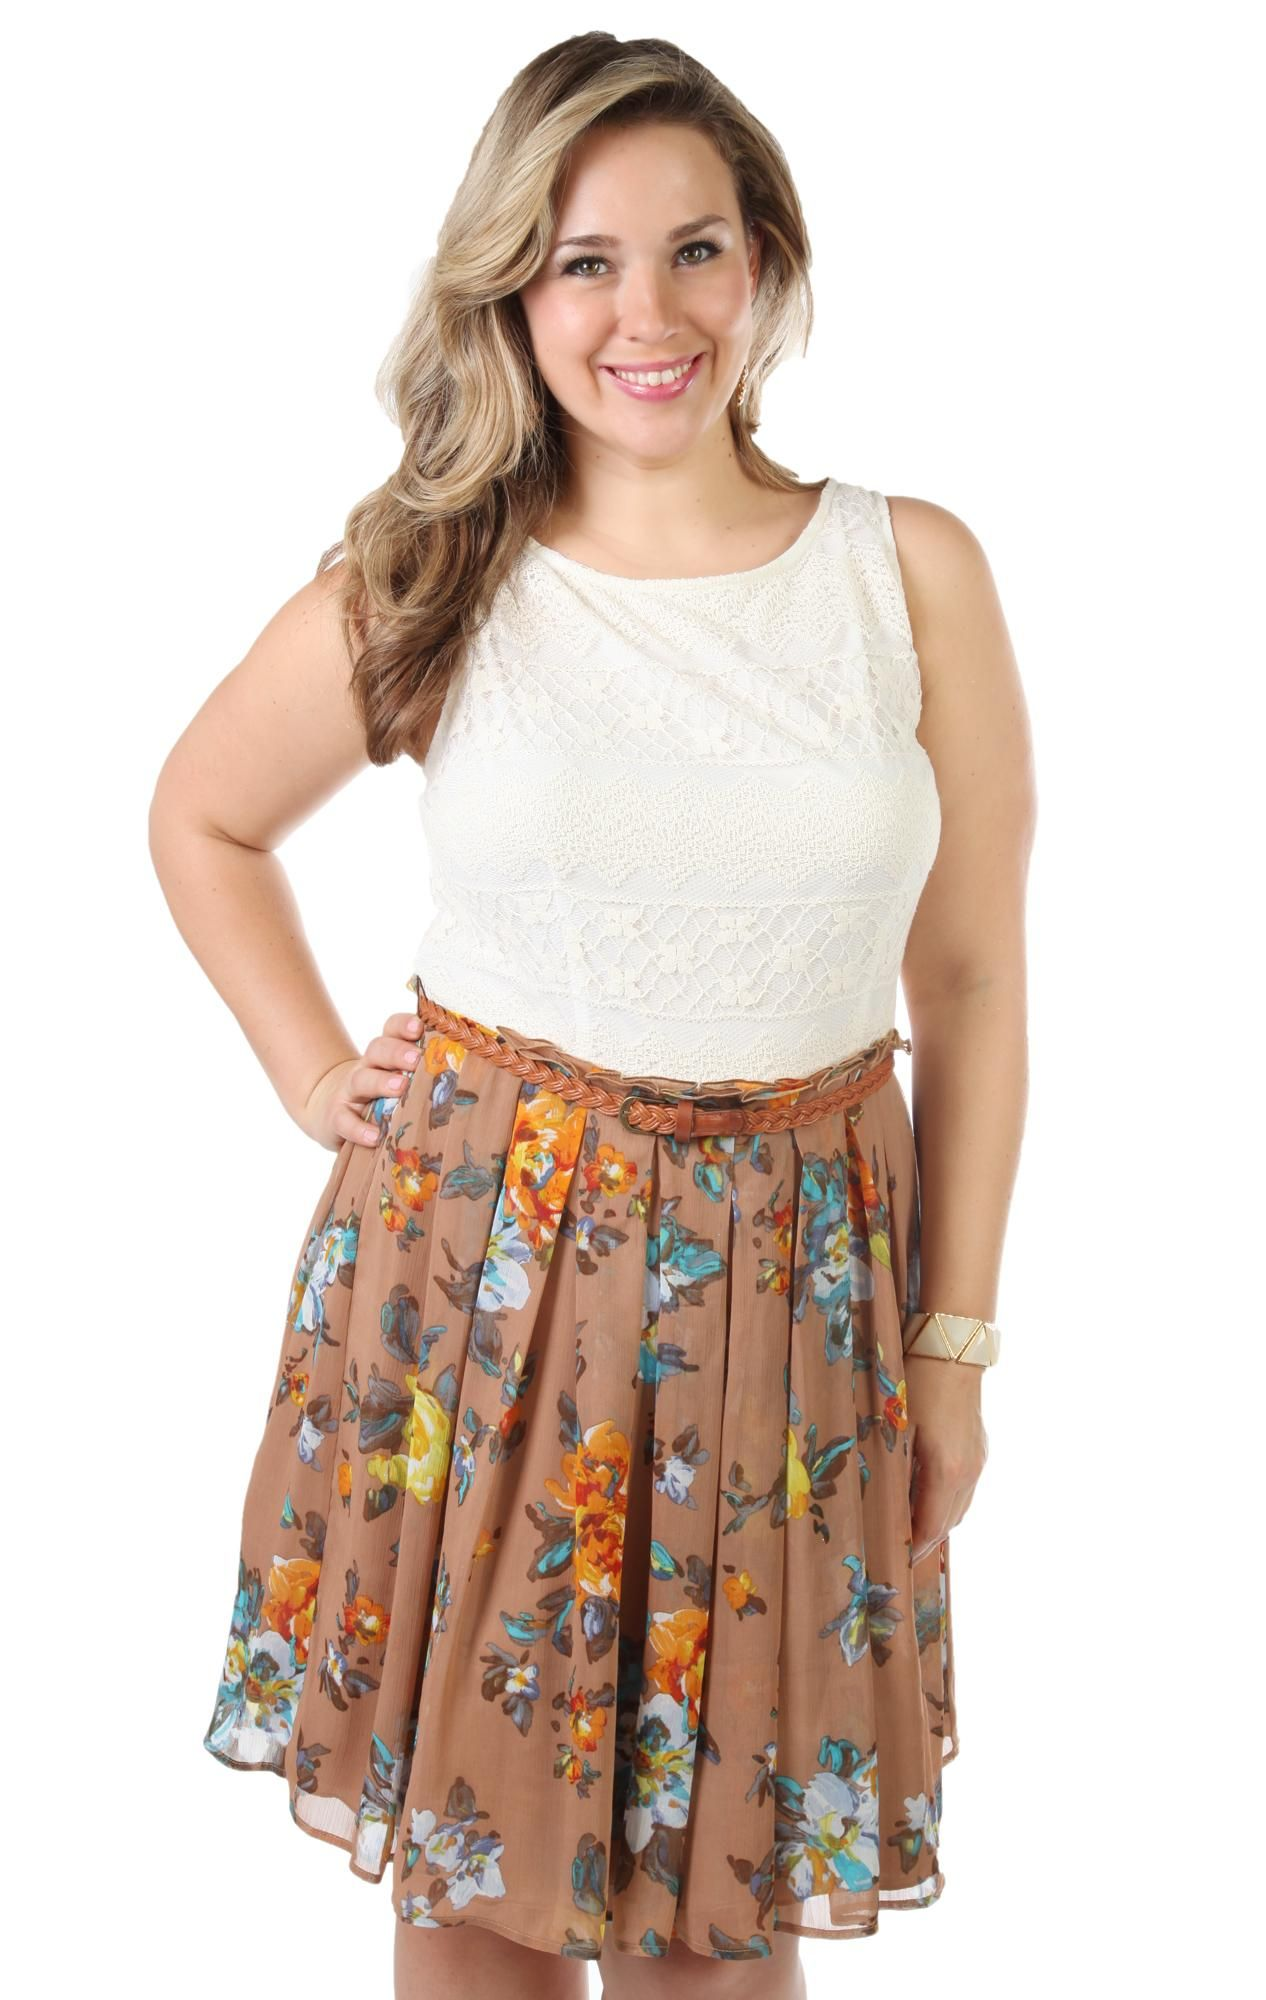 Plus Size Style Clothes Pinterest Curves Curvy Style And Curvy